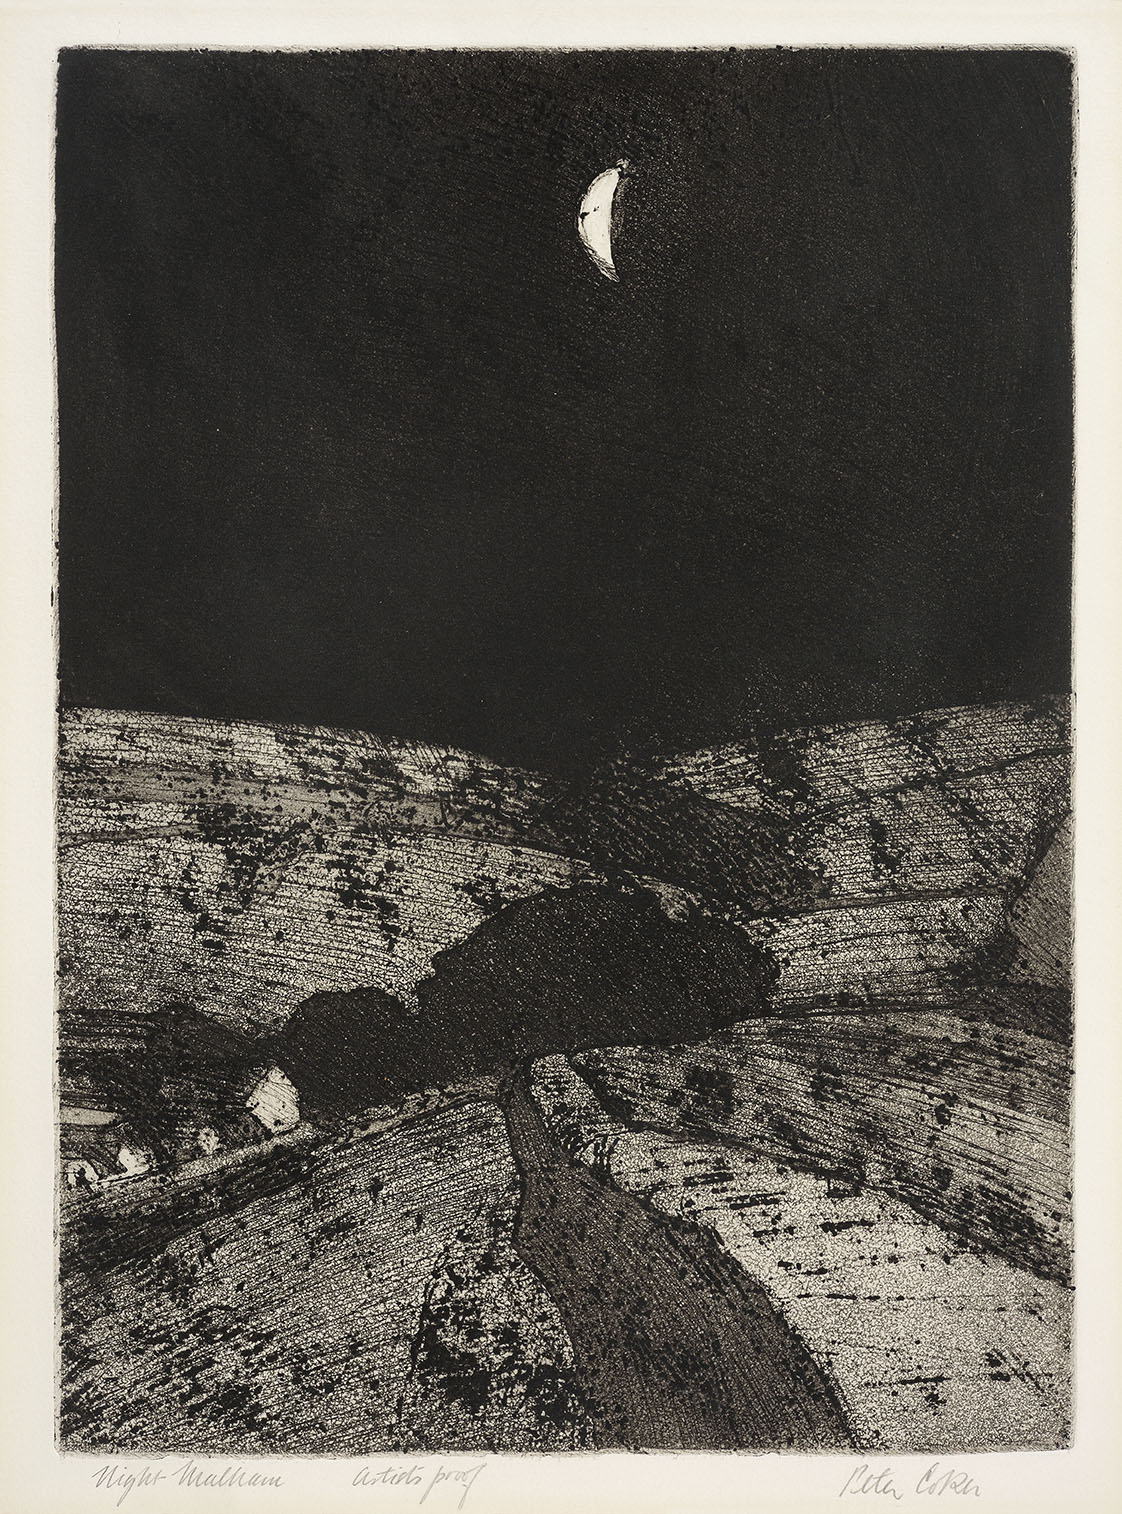 Peter Coker RA (1926-2004)  Malham, Night, 1971, Etching on paper, 14 ½ x 10 ½ in, Signed – AP  [CAS 26] Acquired in 1973